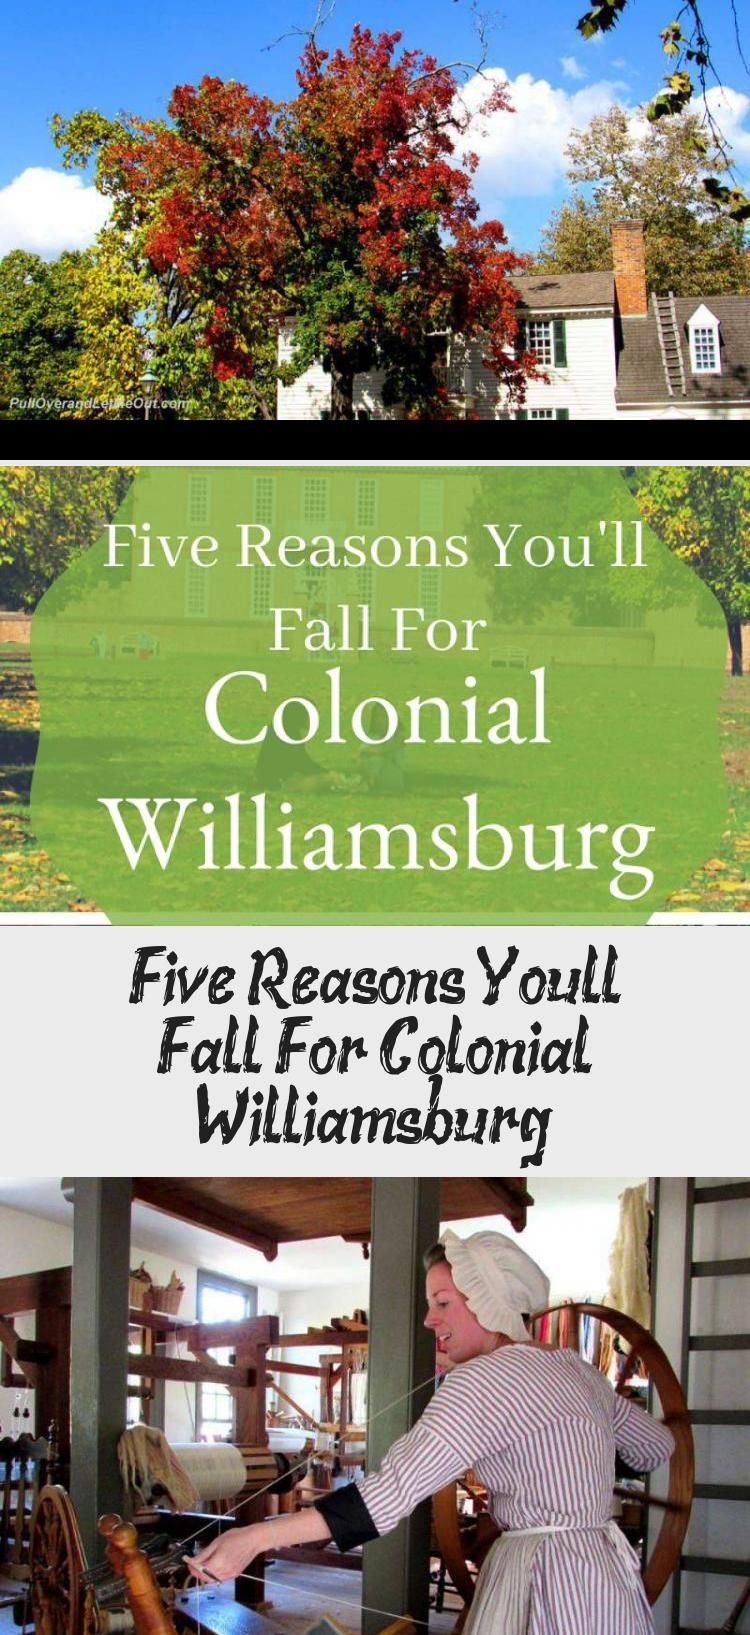 Five Reasons You Ll Fall For Colonial Williamsburg In 2020 Colonial Williamsburg Romantic Travel Romantic Travel Europe